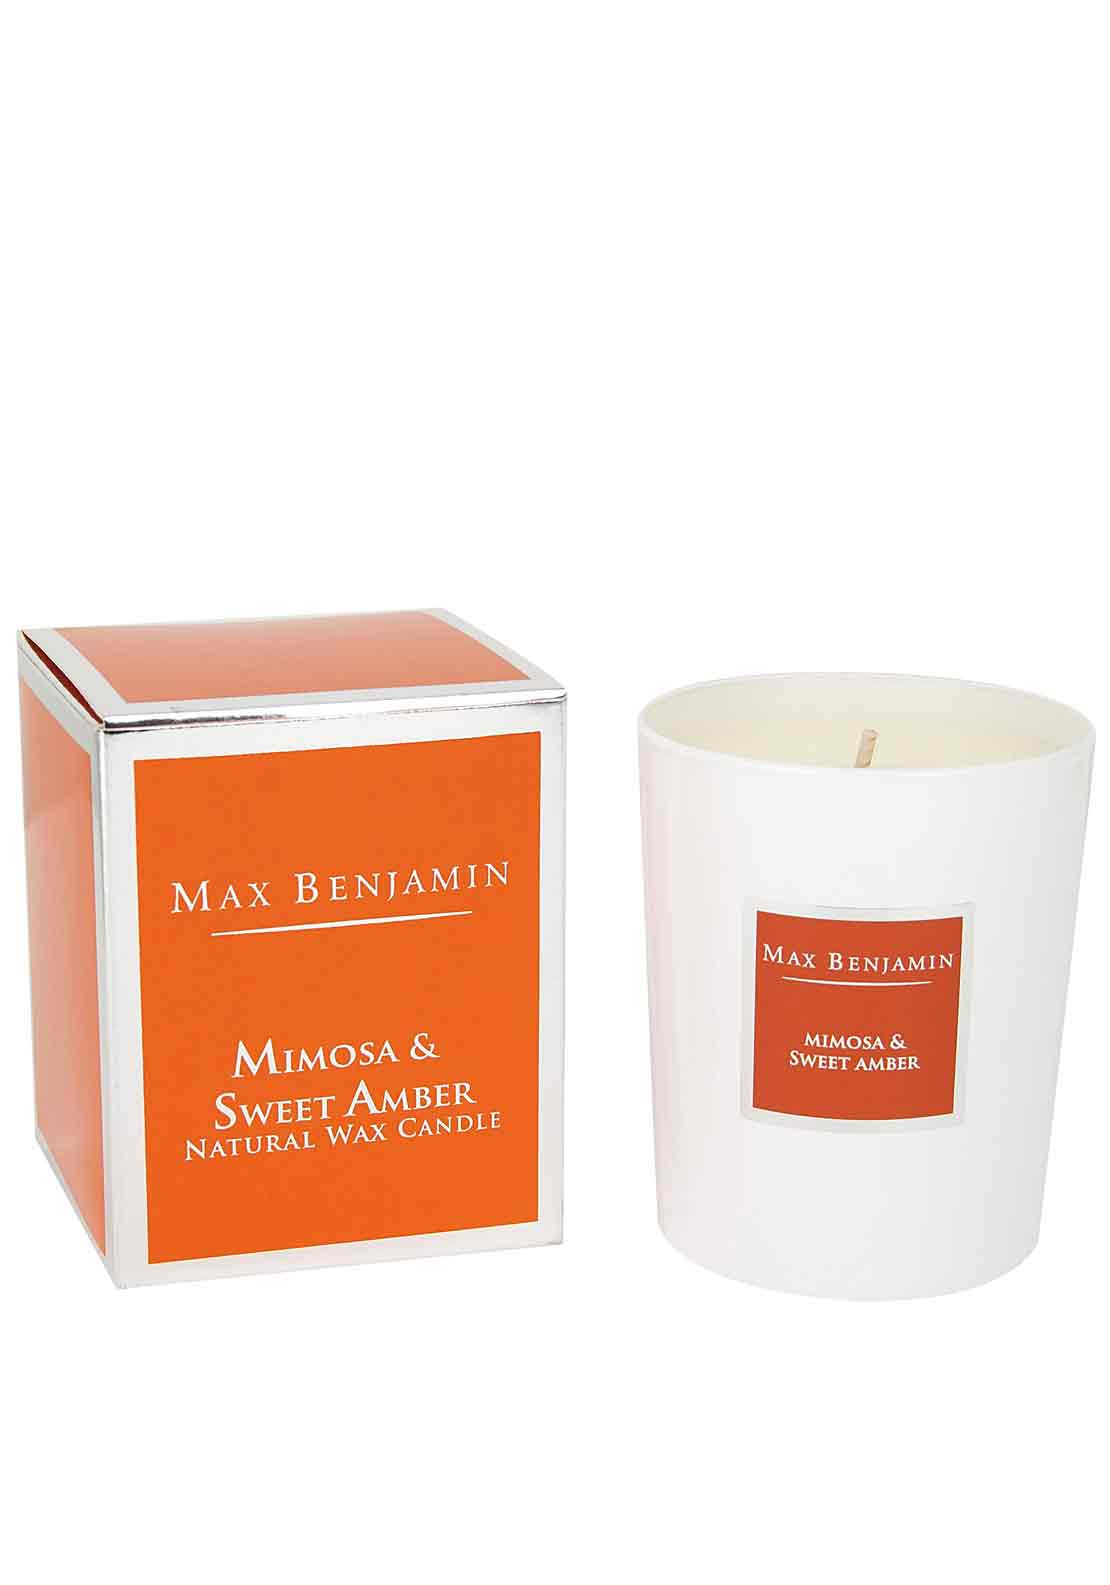 Max Benjamin Mimosa & Sweet Amber Scented Candle